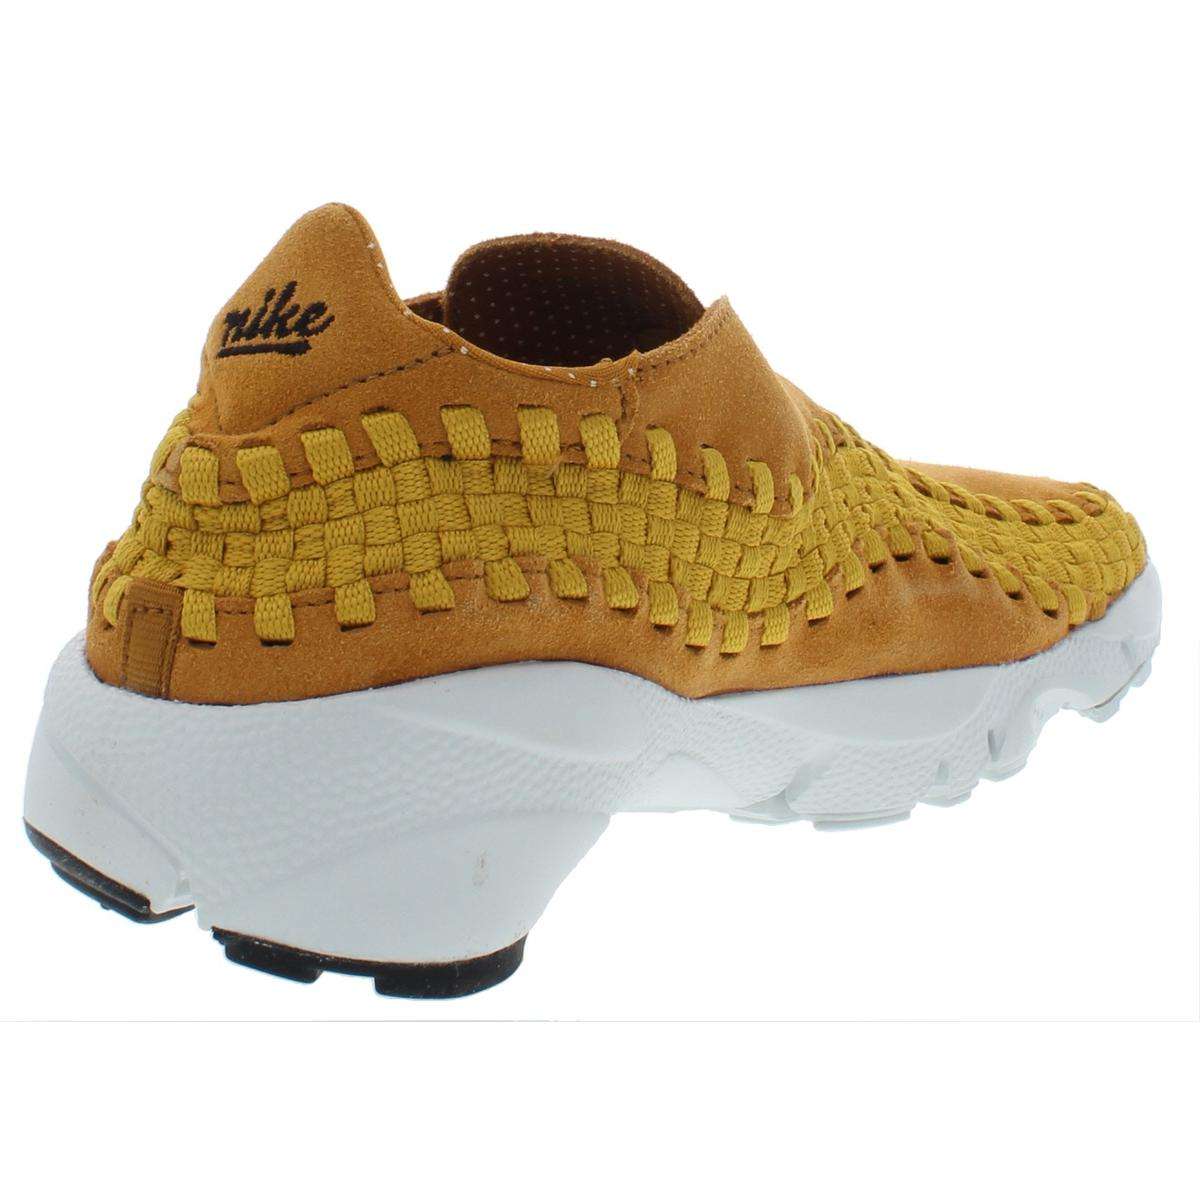 Nike-Mens-Air-Footscape-Woven-Low-Top-Lifestyle-Fashion-Sneakers-Shoes-BHFO-3976 thumbnail 6